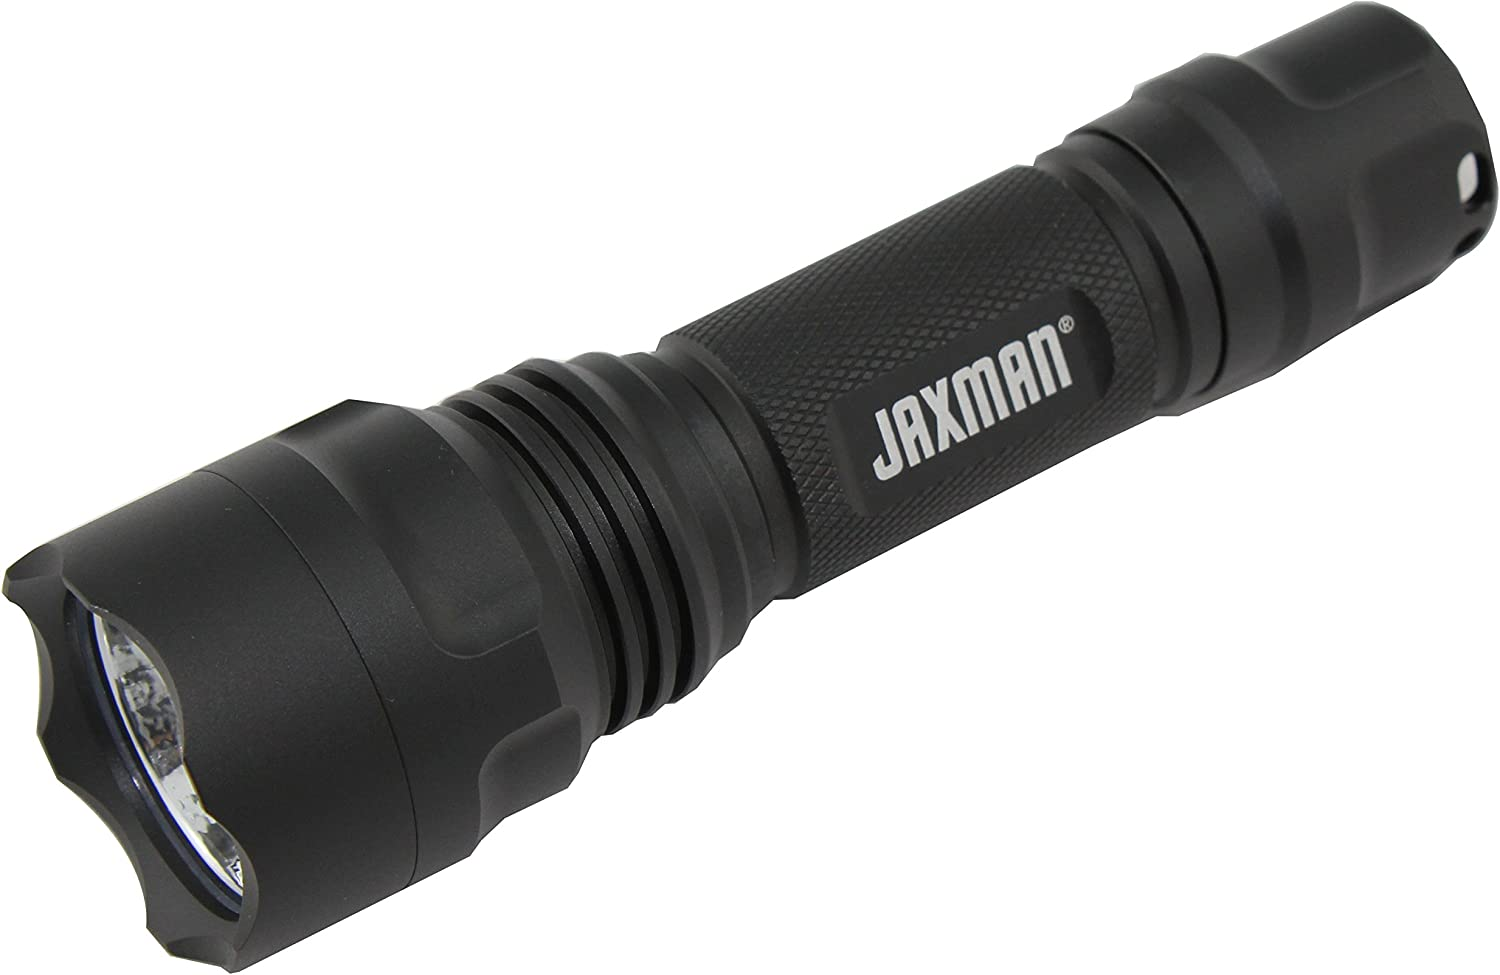 Image of the Jaxman flashlight in matte black color, with JAXMAN print on it.